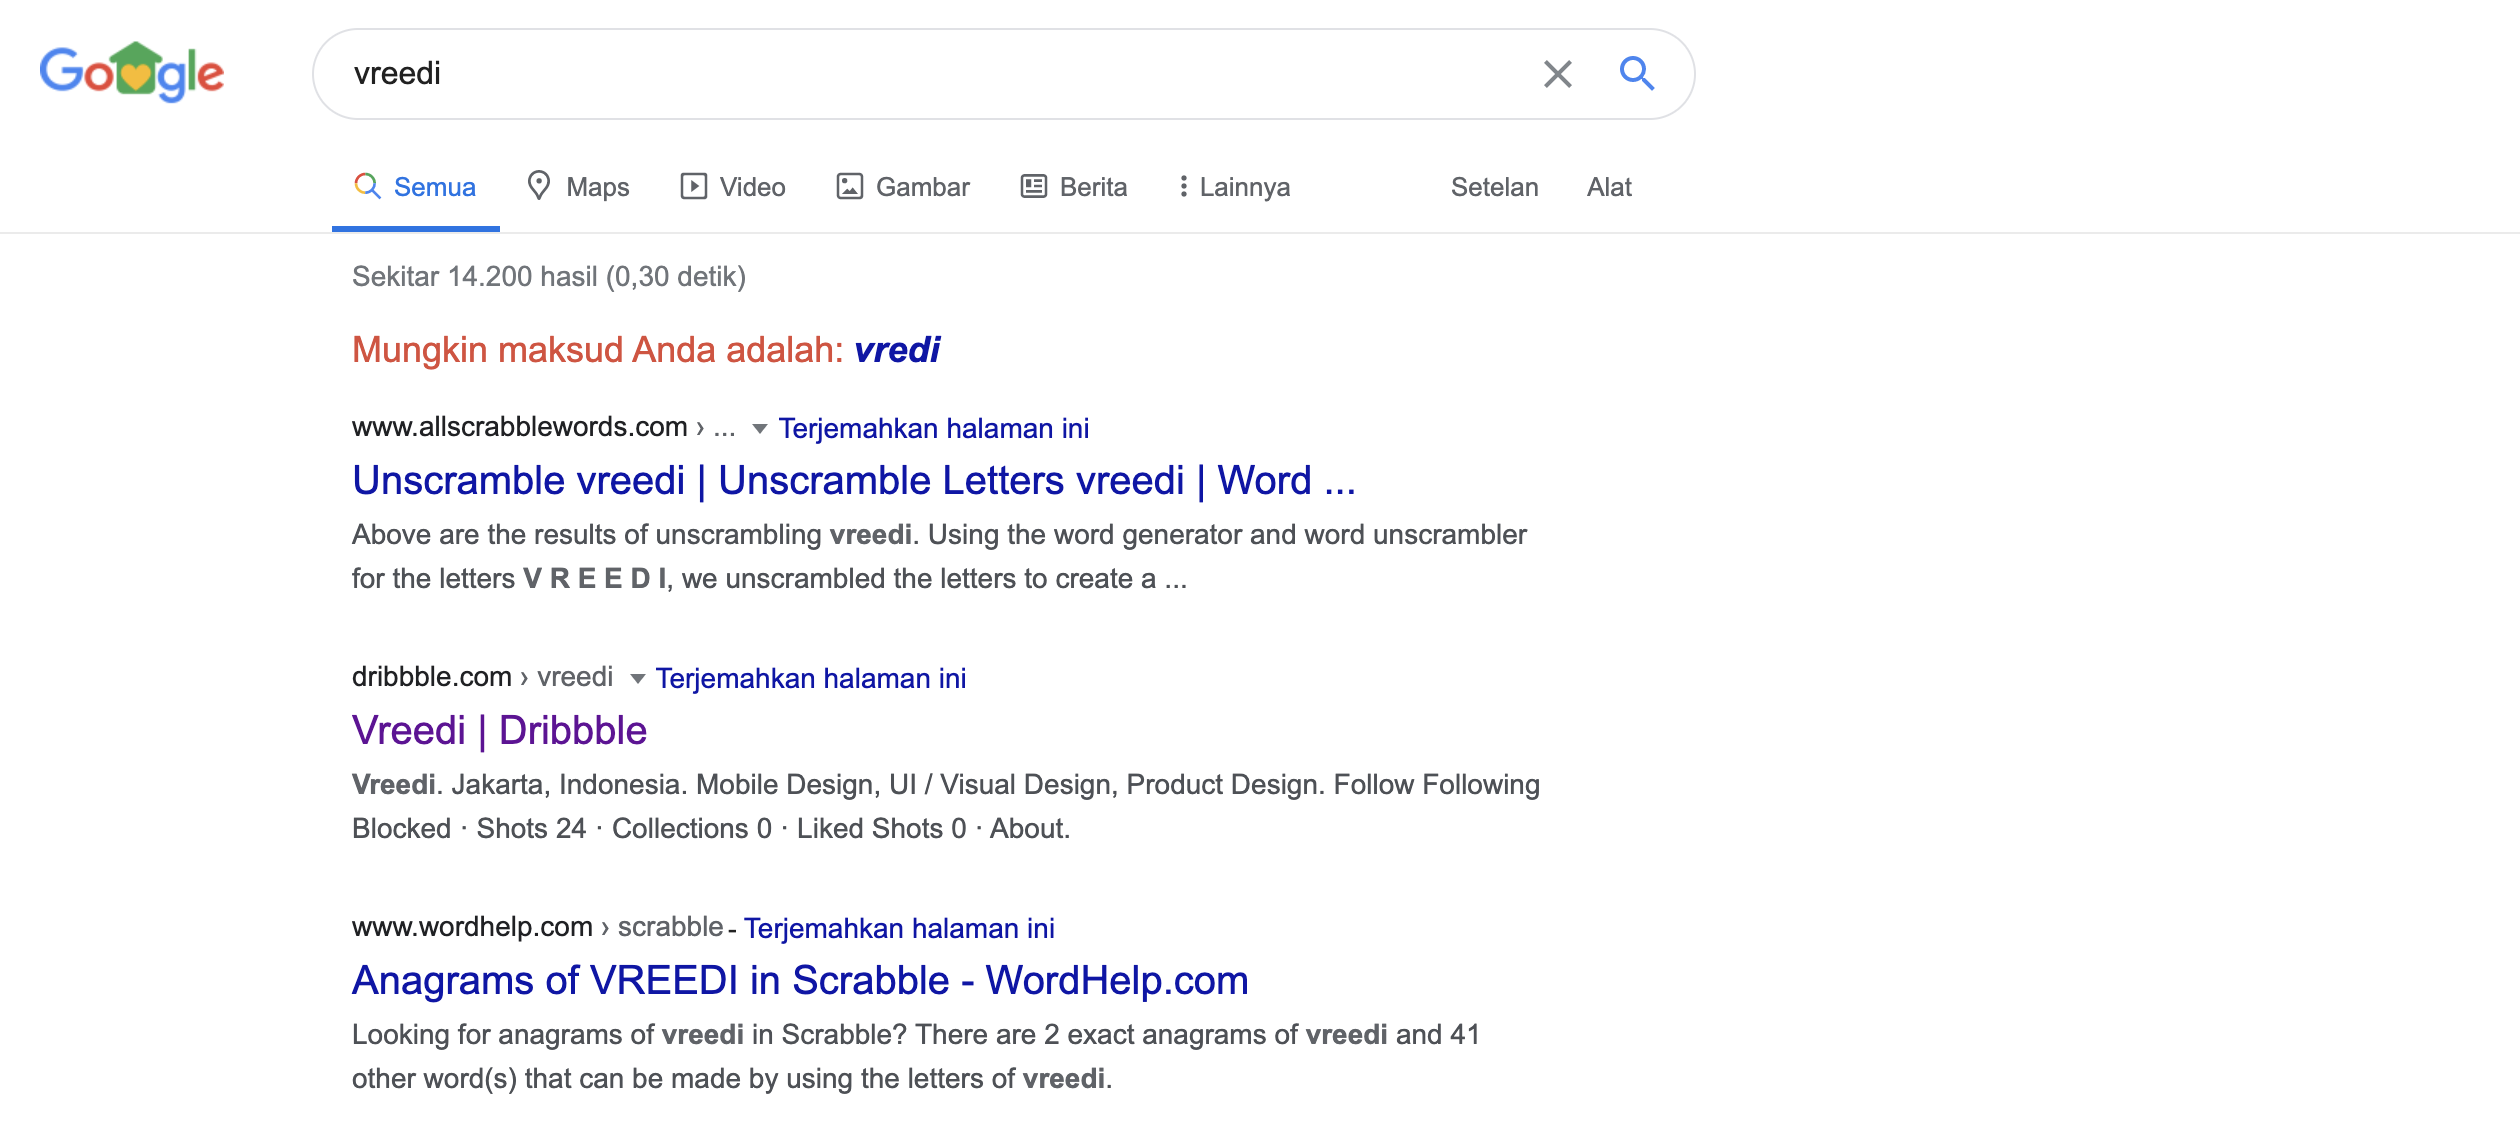 why when I search my web on Google by simply writing my domain ...